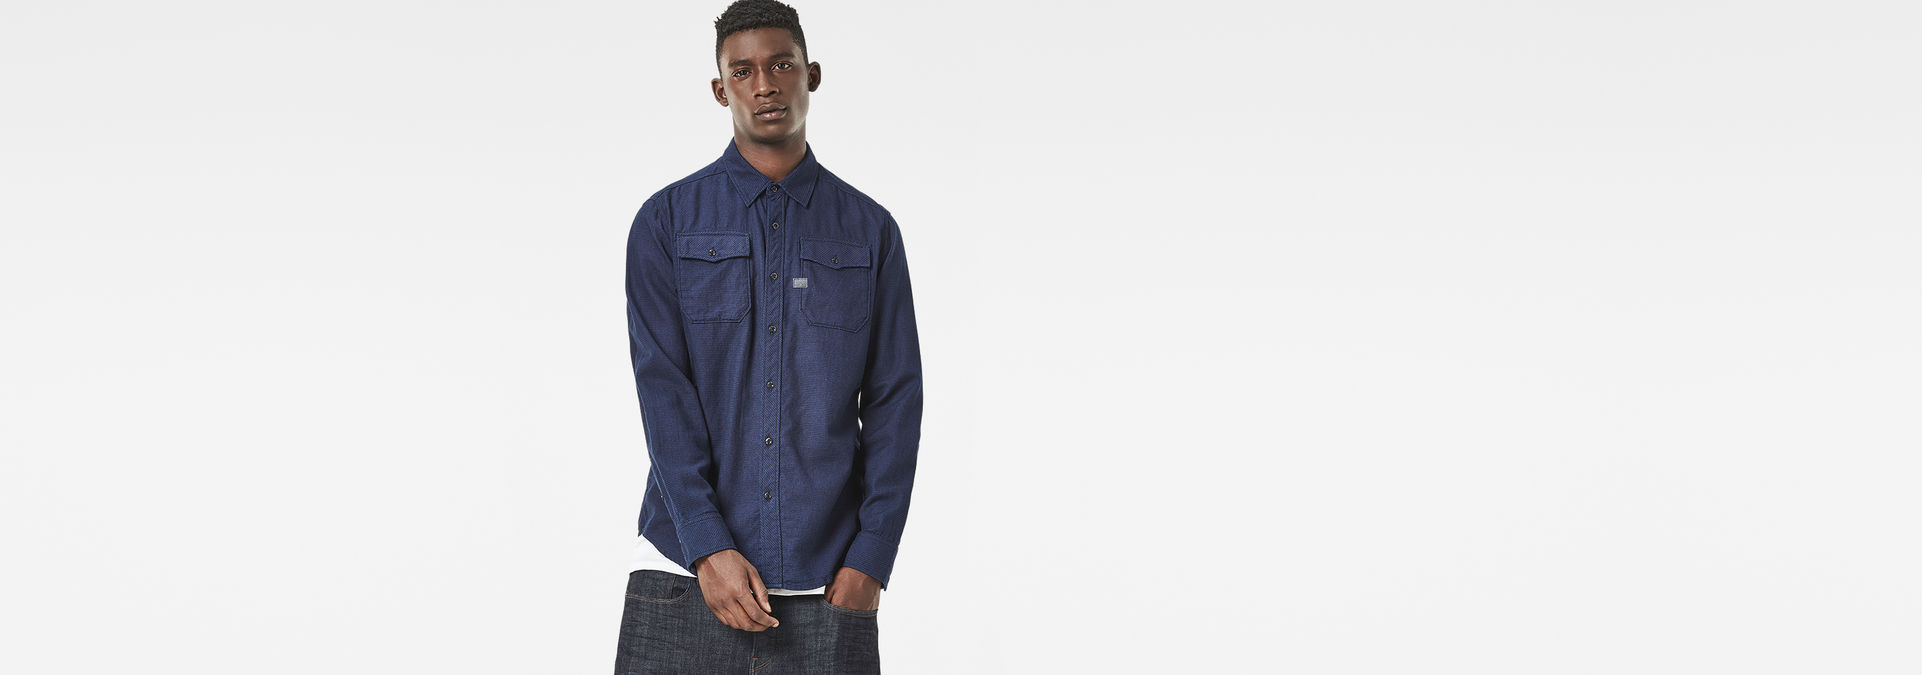 22bfd55bbdf Landoh Shirt | rinsed check | Men | G-Star RAW®